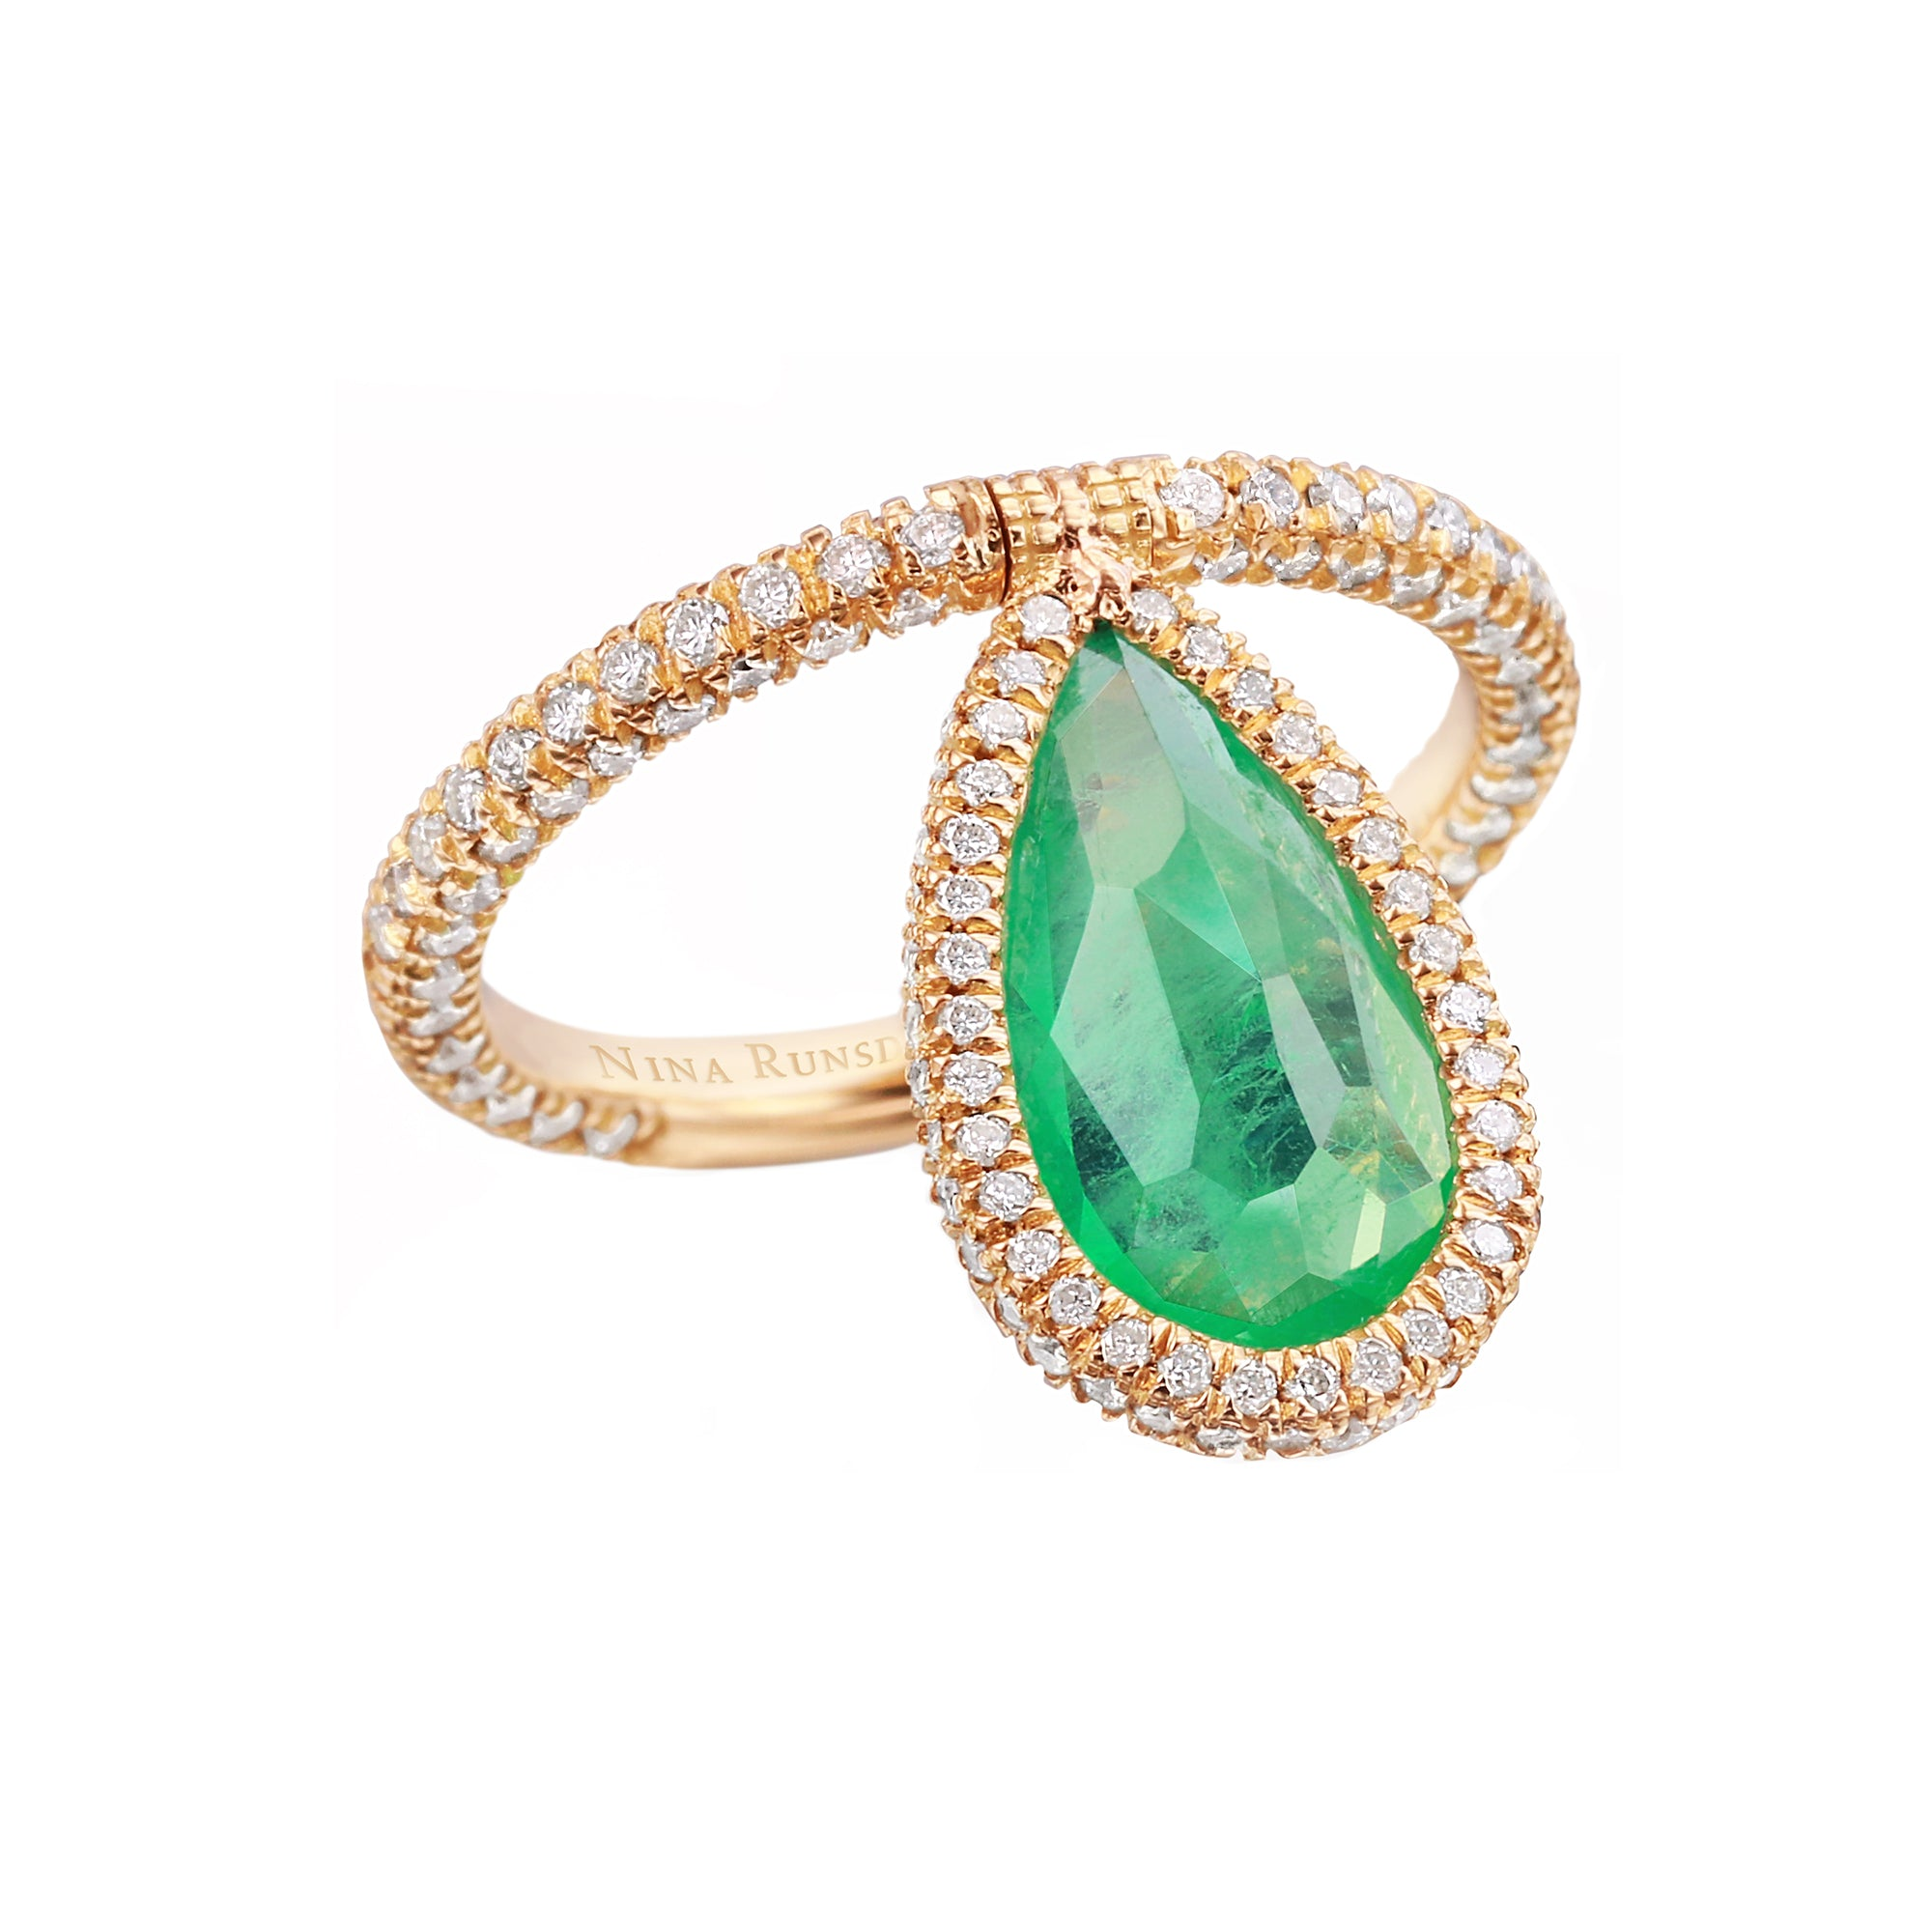 Emerald Flip Ring by Nina Runsdorf for Broken English Jewelry